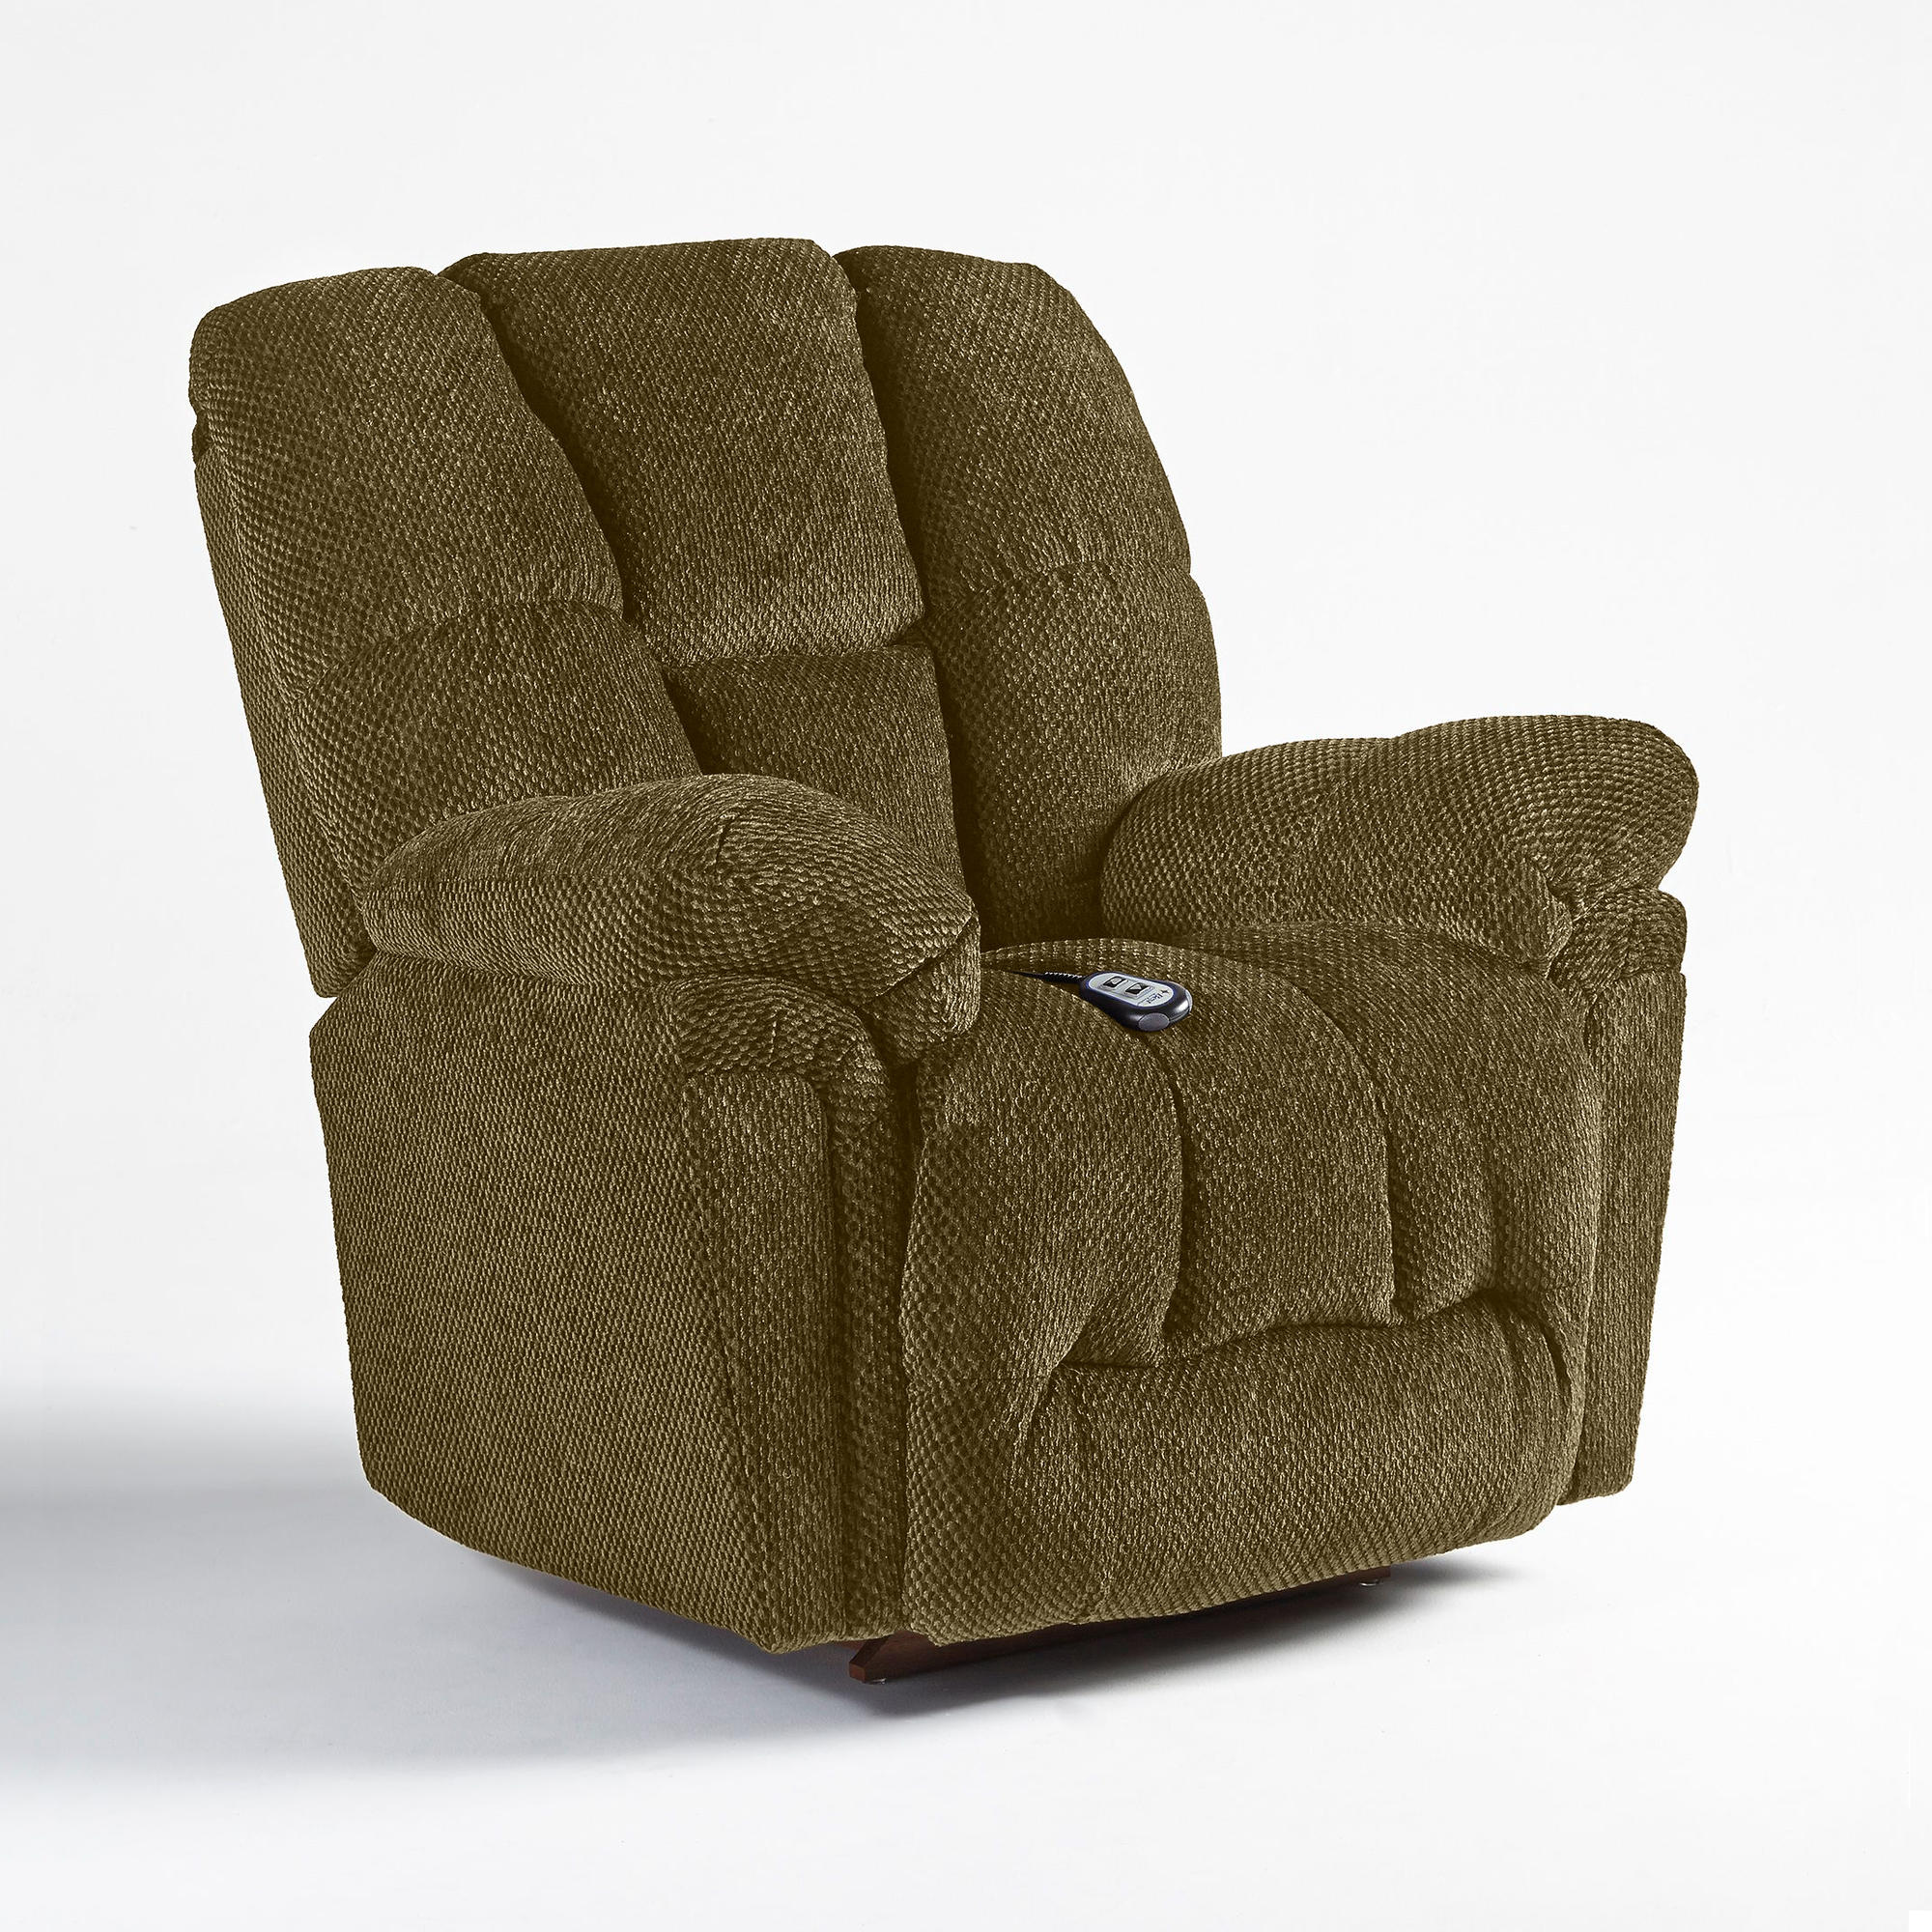 sears recliner chairs wedding chair covers hire prices home furniture